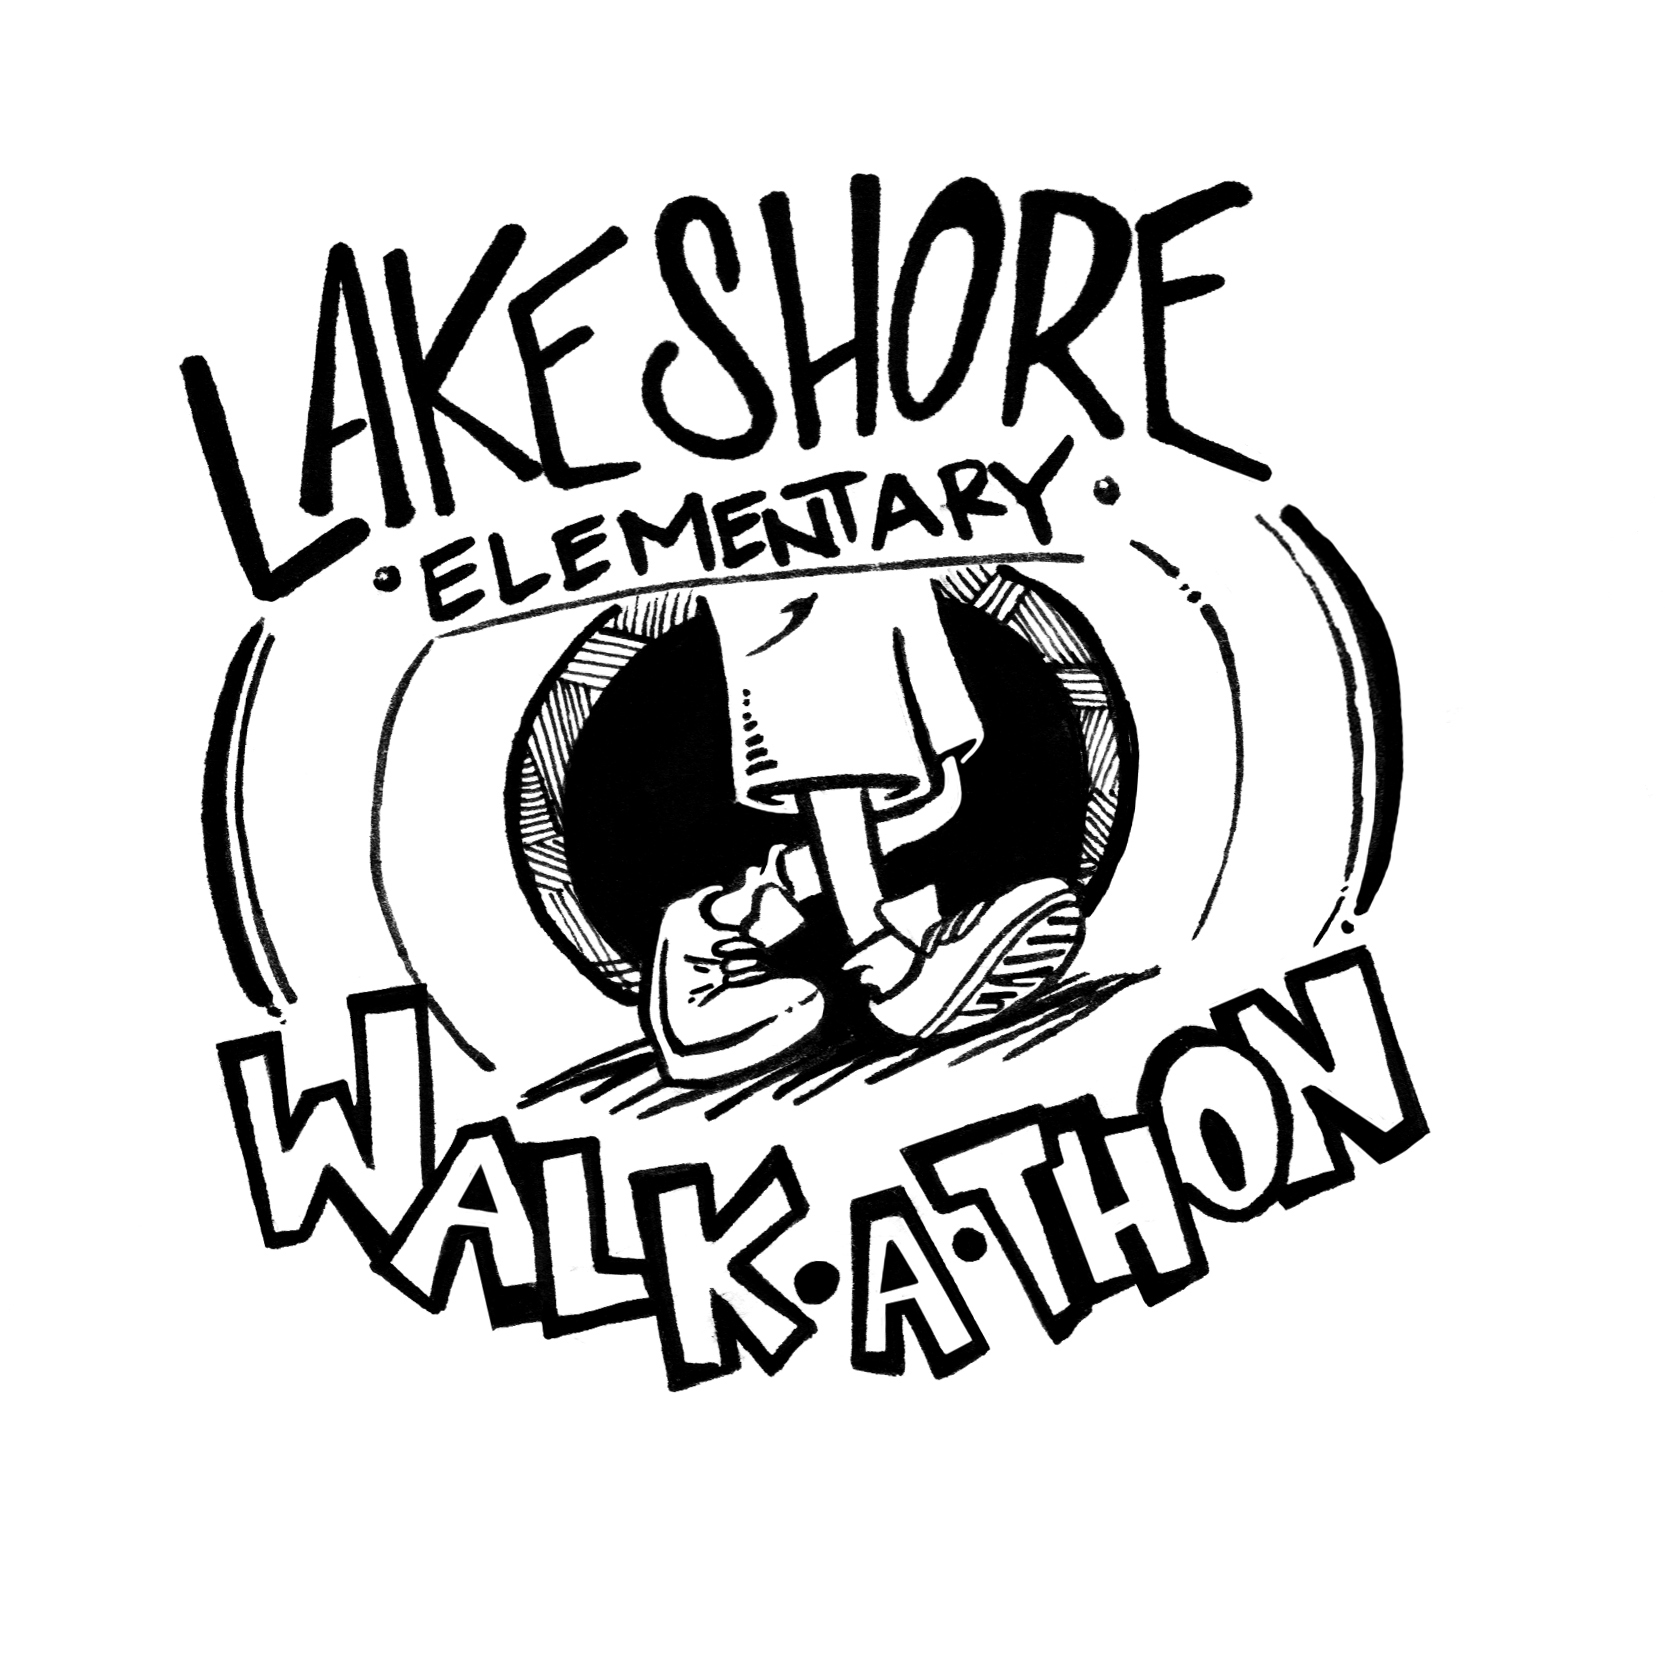 Lakeshore Elementary School » Walk-a-Thon is October 10